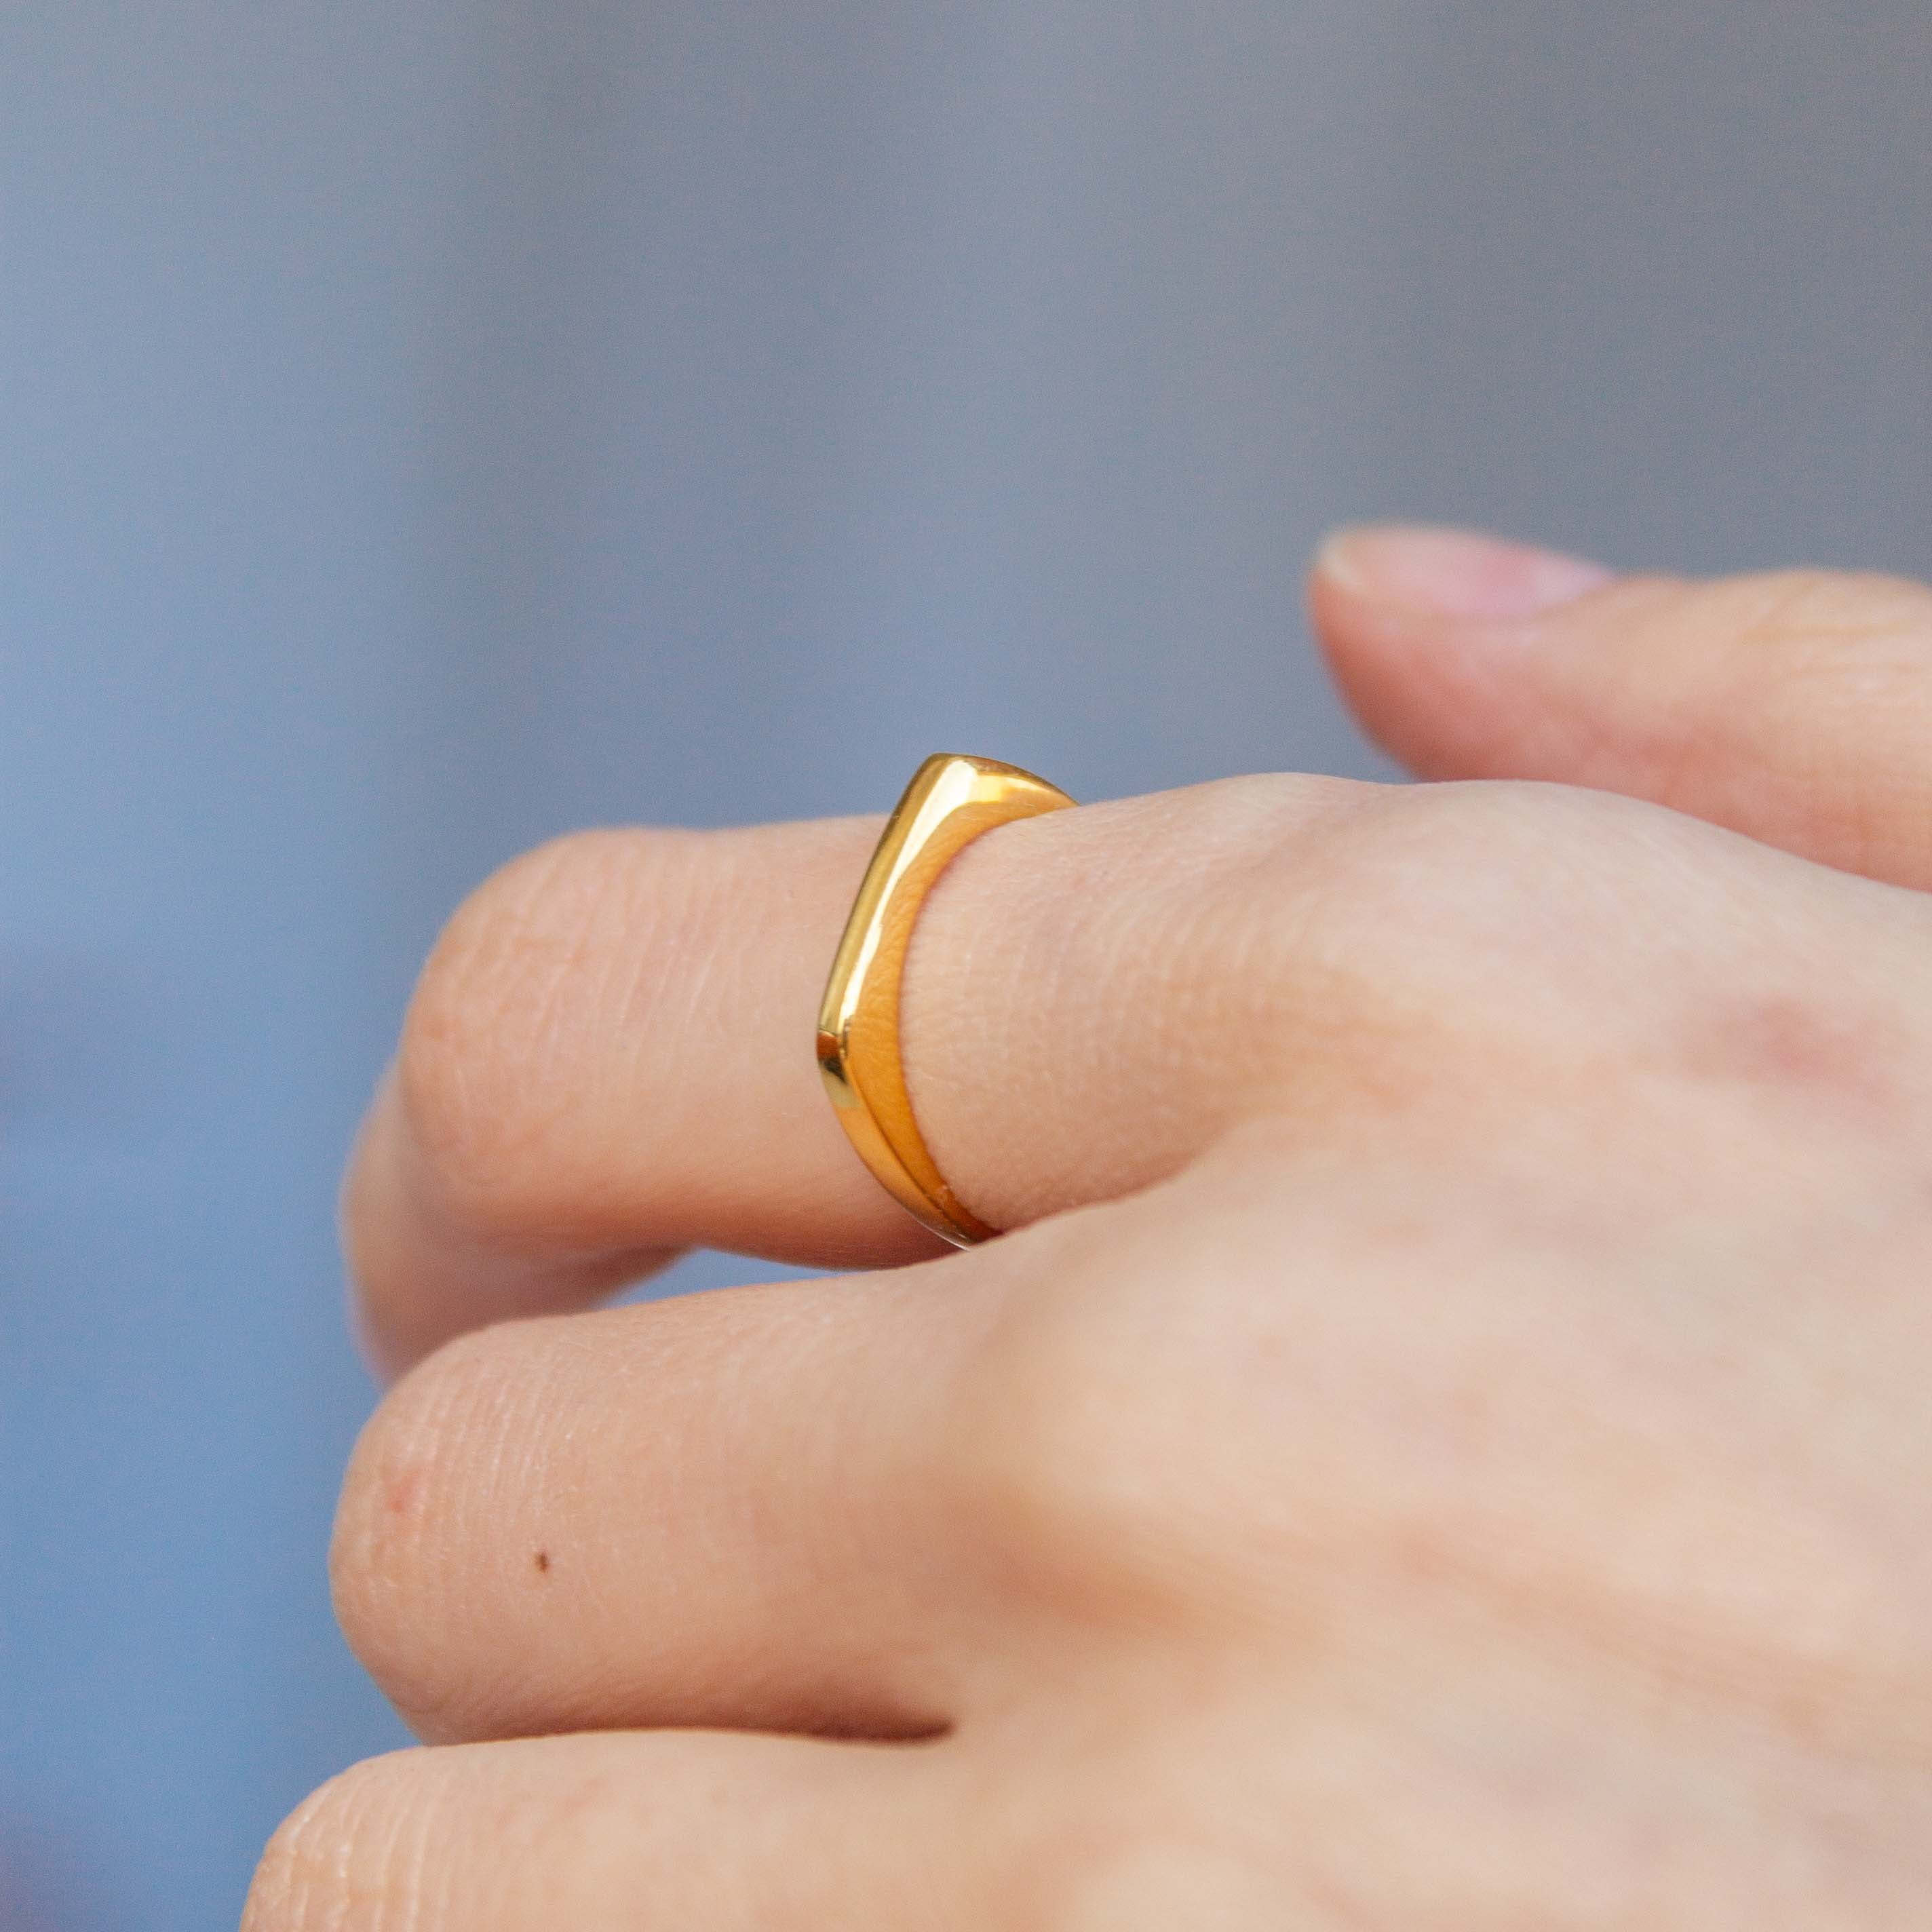 pico_jewellery_vermeil_stacking_line_minimal_ring